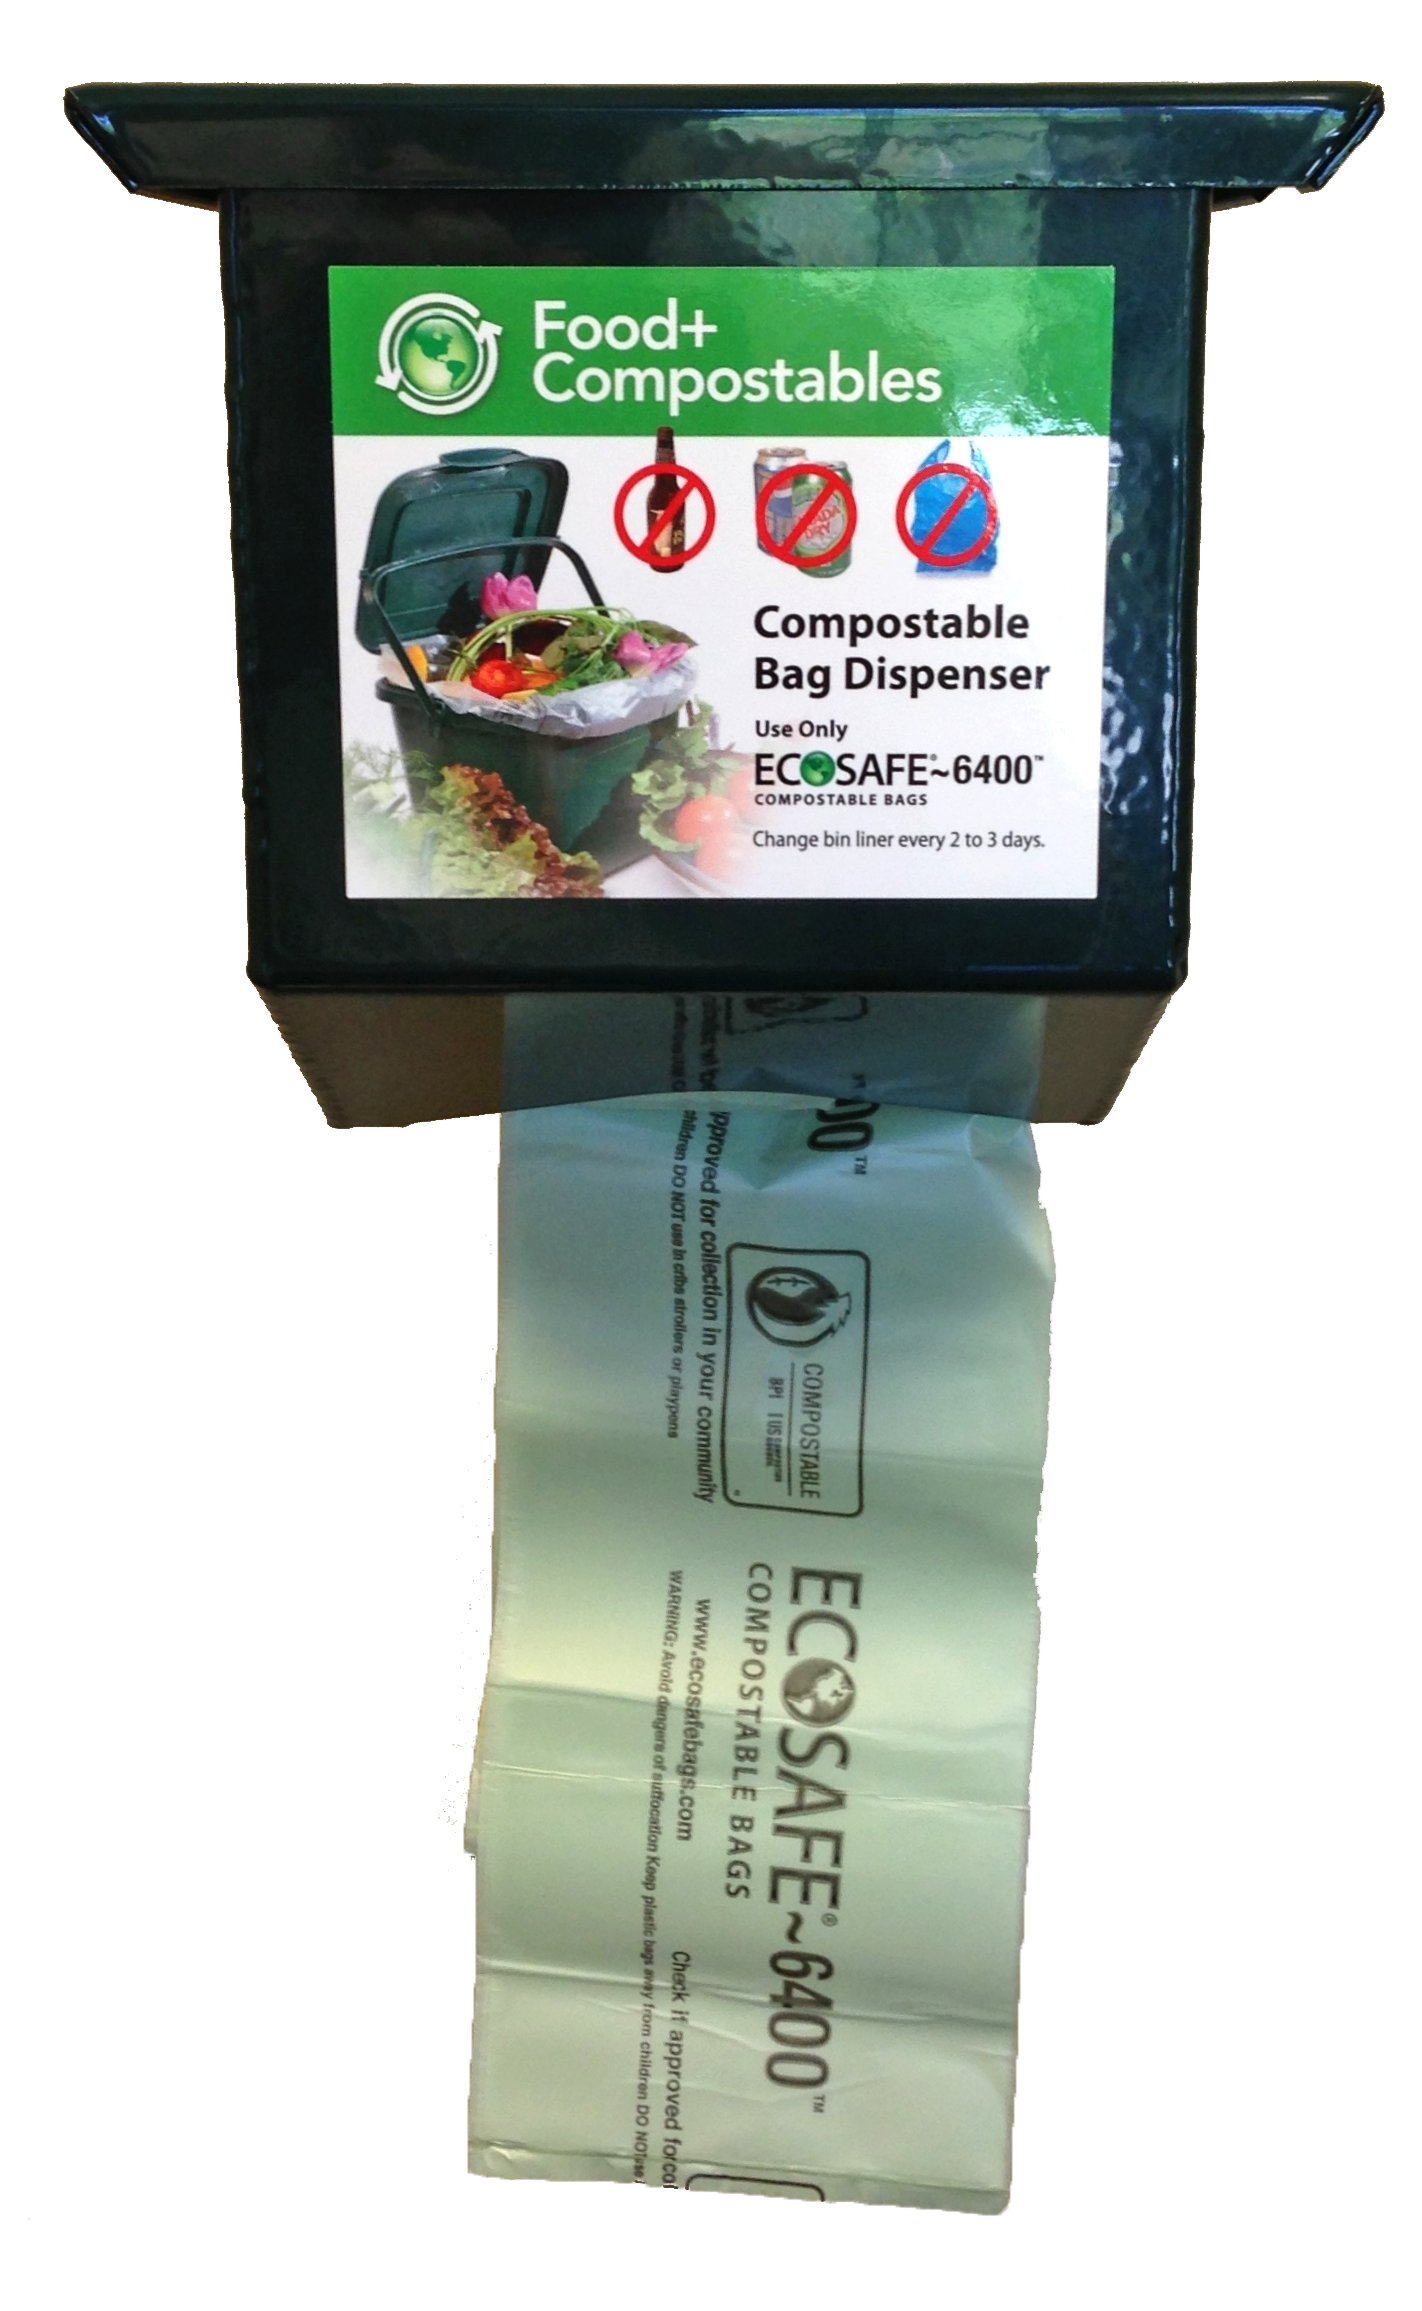 EcoSafe EcoSafe-MultiRes Compostable Bag Dispenser, Powder Coated Aluminium, Holds 325 Bags, Green